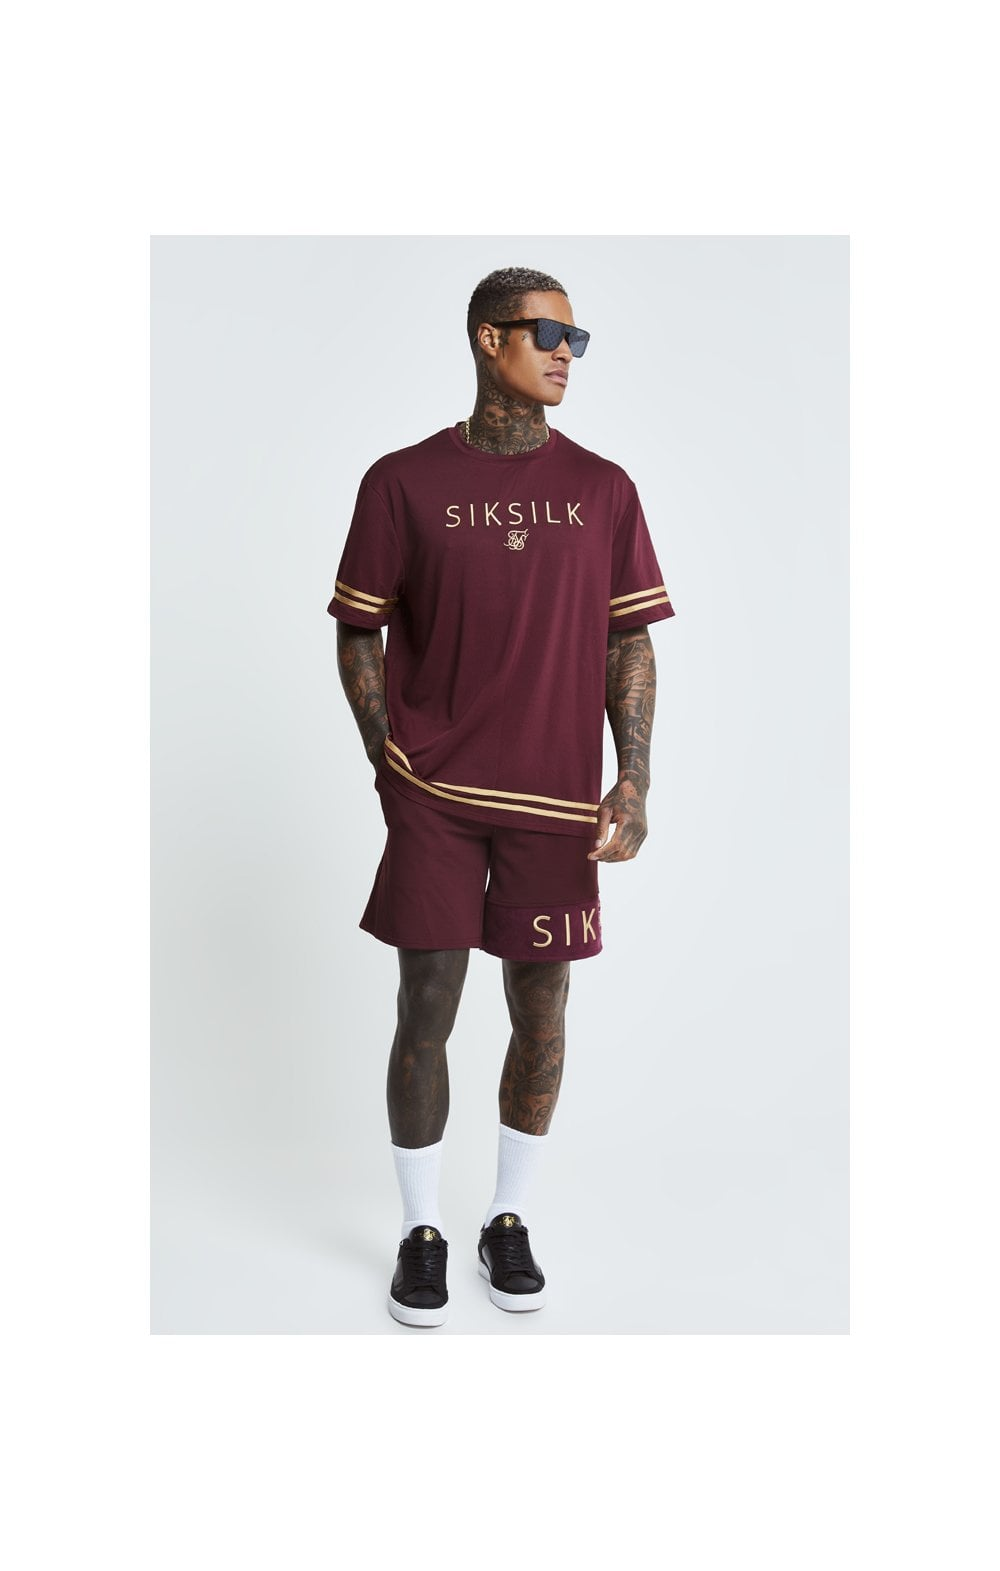 SikSilk S/S Signature Oversize Essentials Tee - Burgundy & Gold (2)